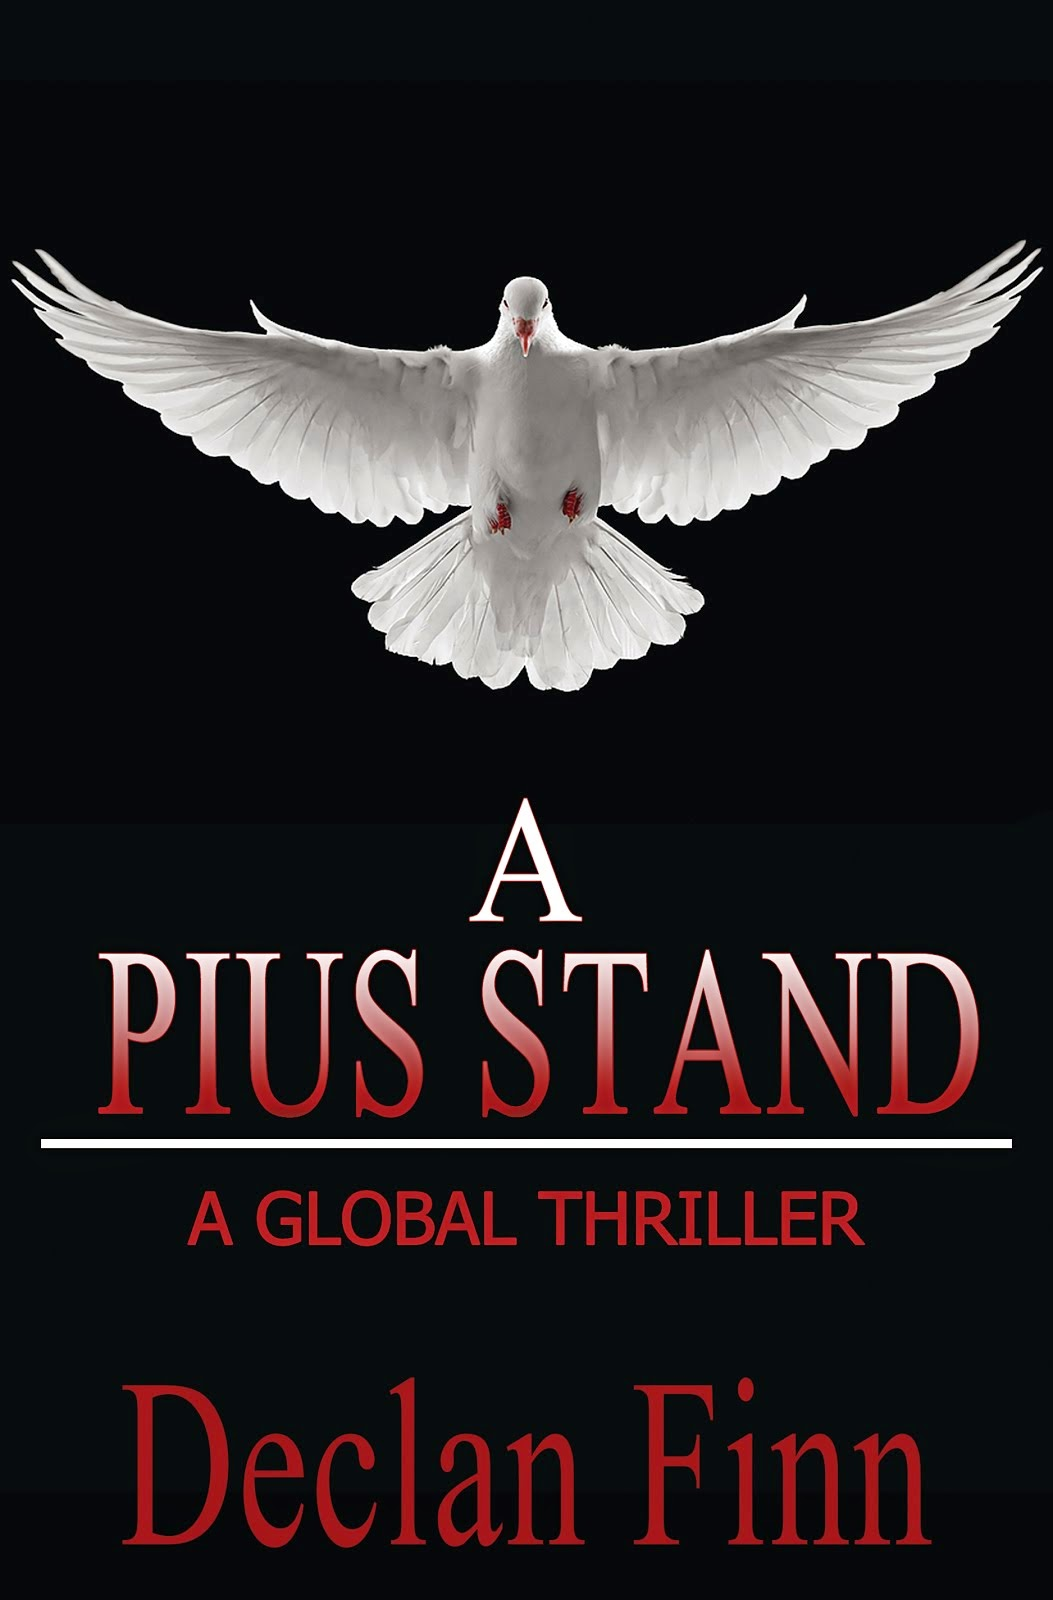 A Pius Stand